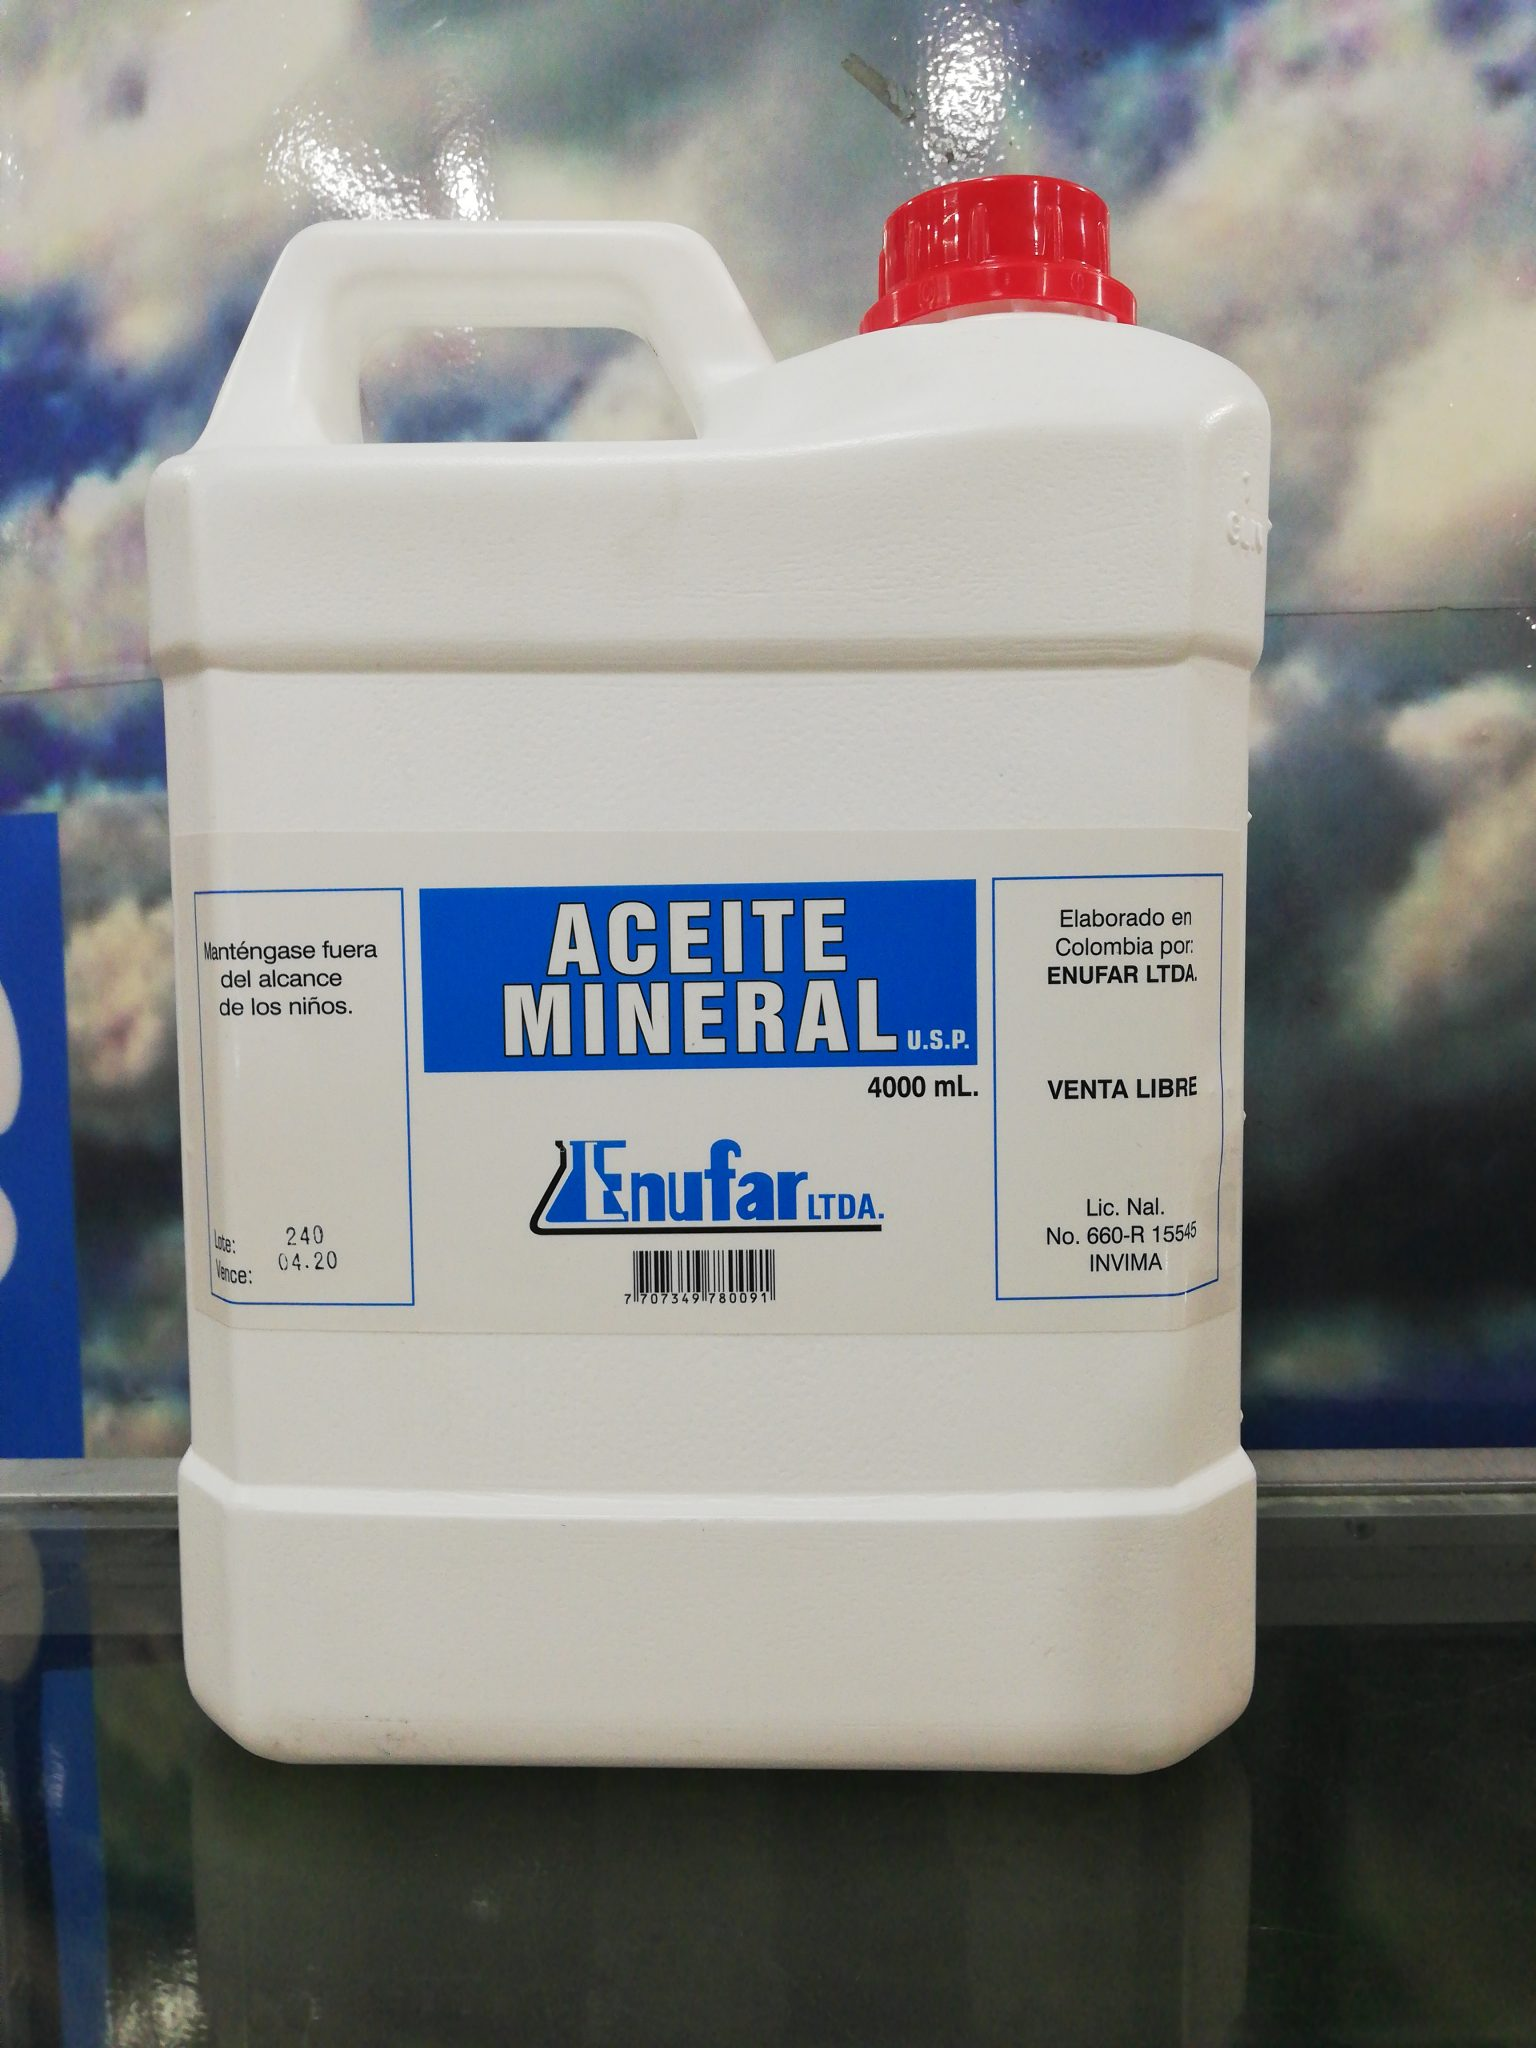 ACEITE MINERAL X 500 ML.